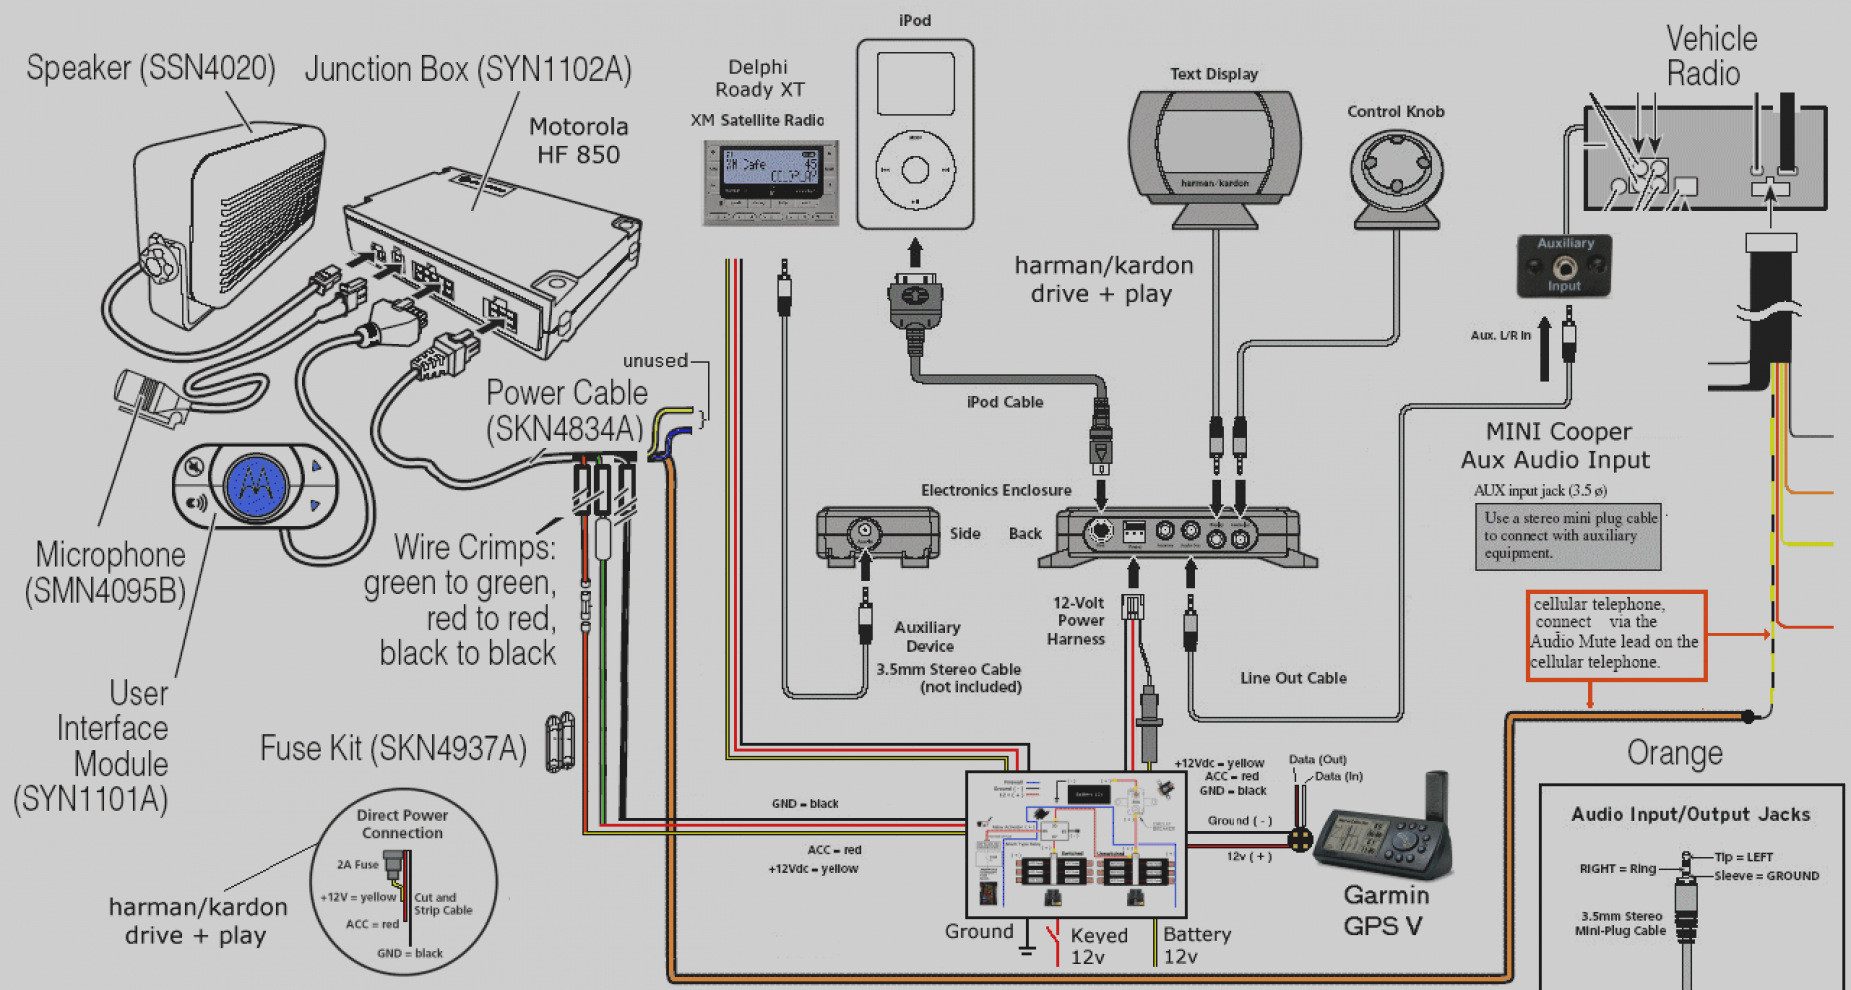 Garmin Gps Antenna Wiring Usb Diagram - House Wiring Diagram Symbols •